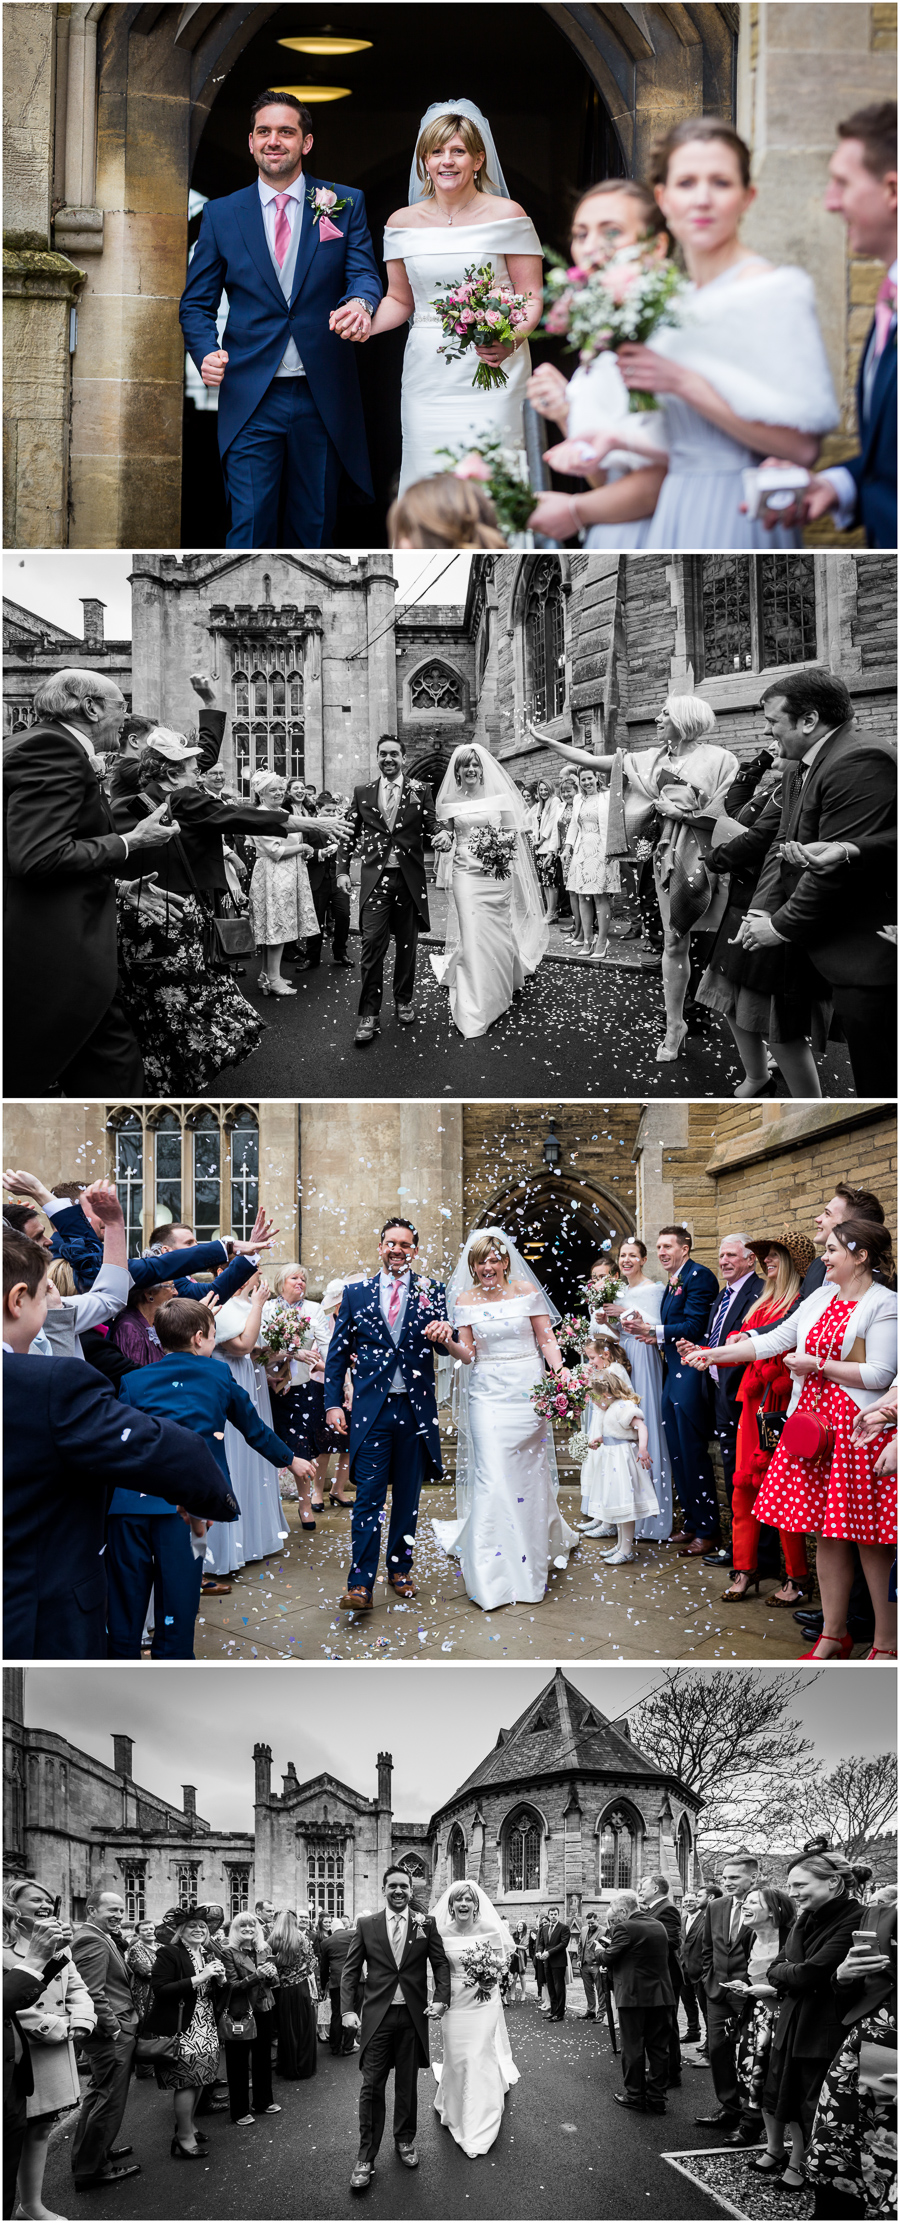 York wedding Photographer - confetti throwing outside St Peters school chapel